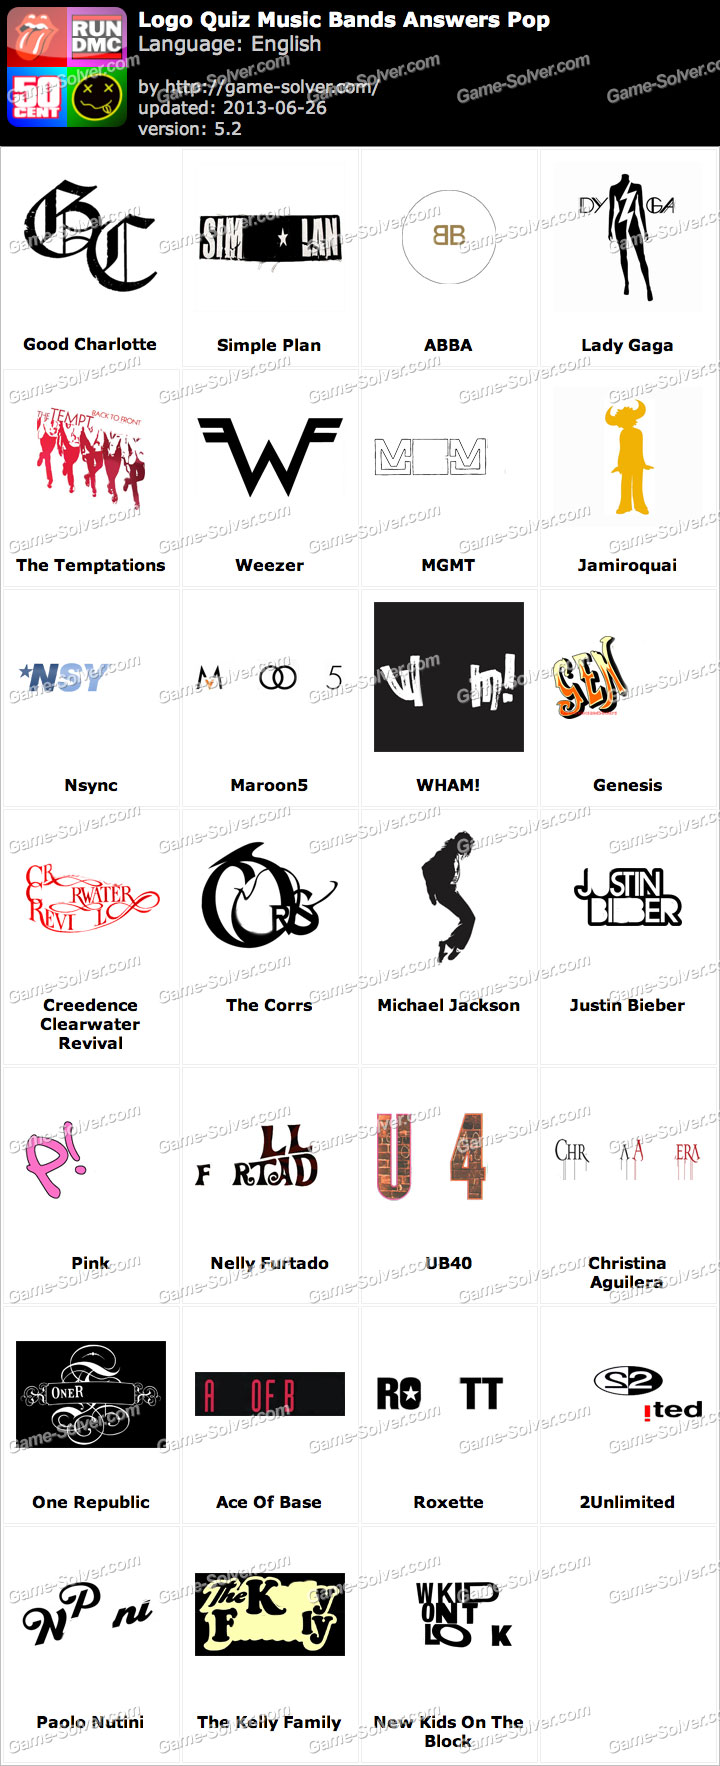 Logo Quiz Music Bands Answers Pop.